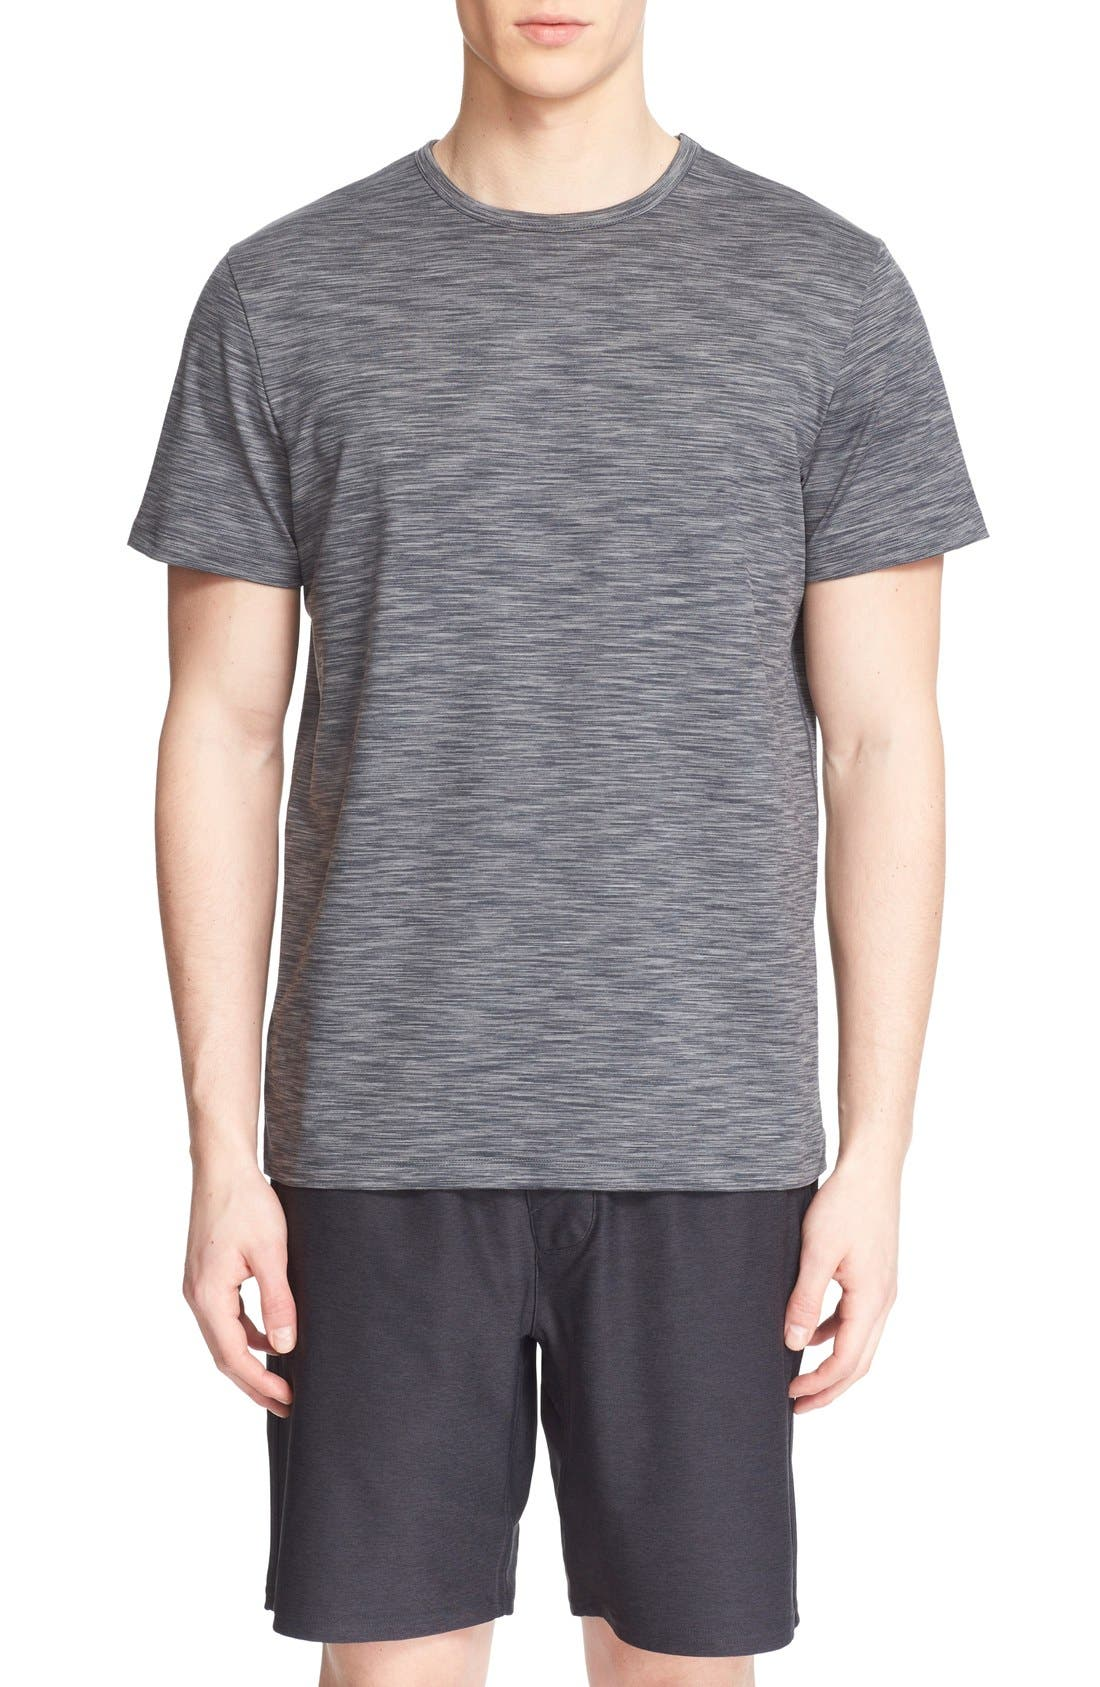 A.P.C. and Outdoor Voices 'Austin' Space-Dyed T-Shirt